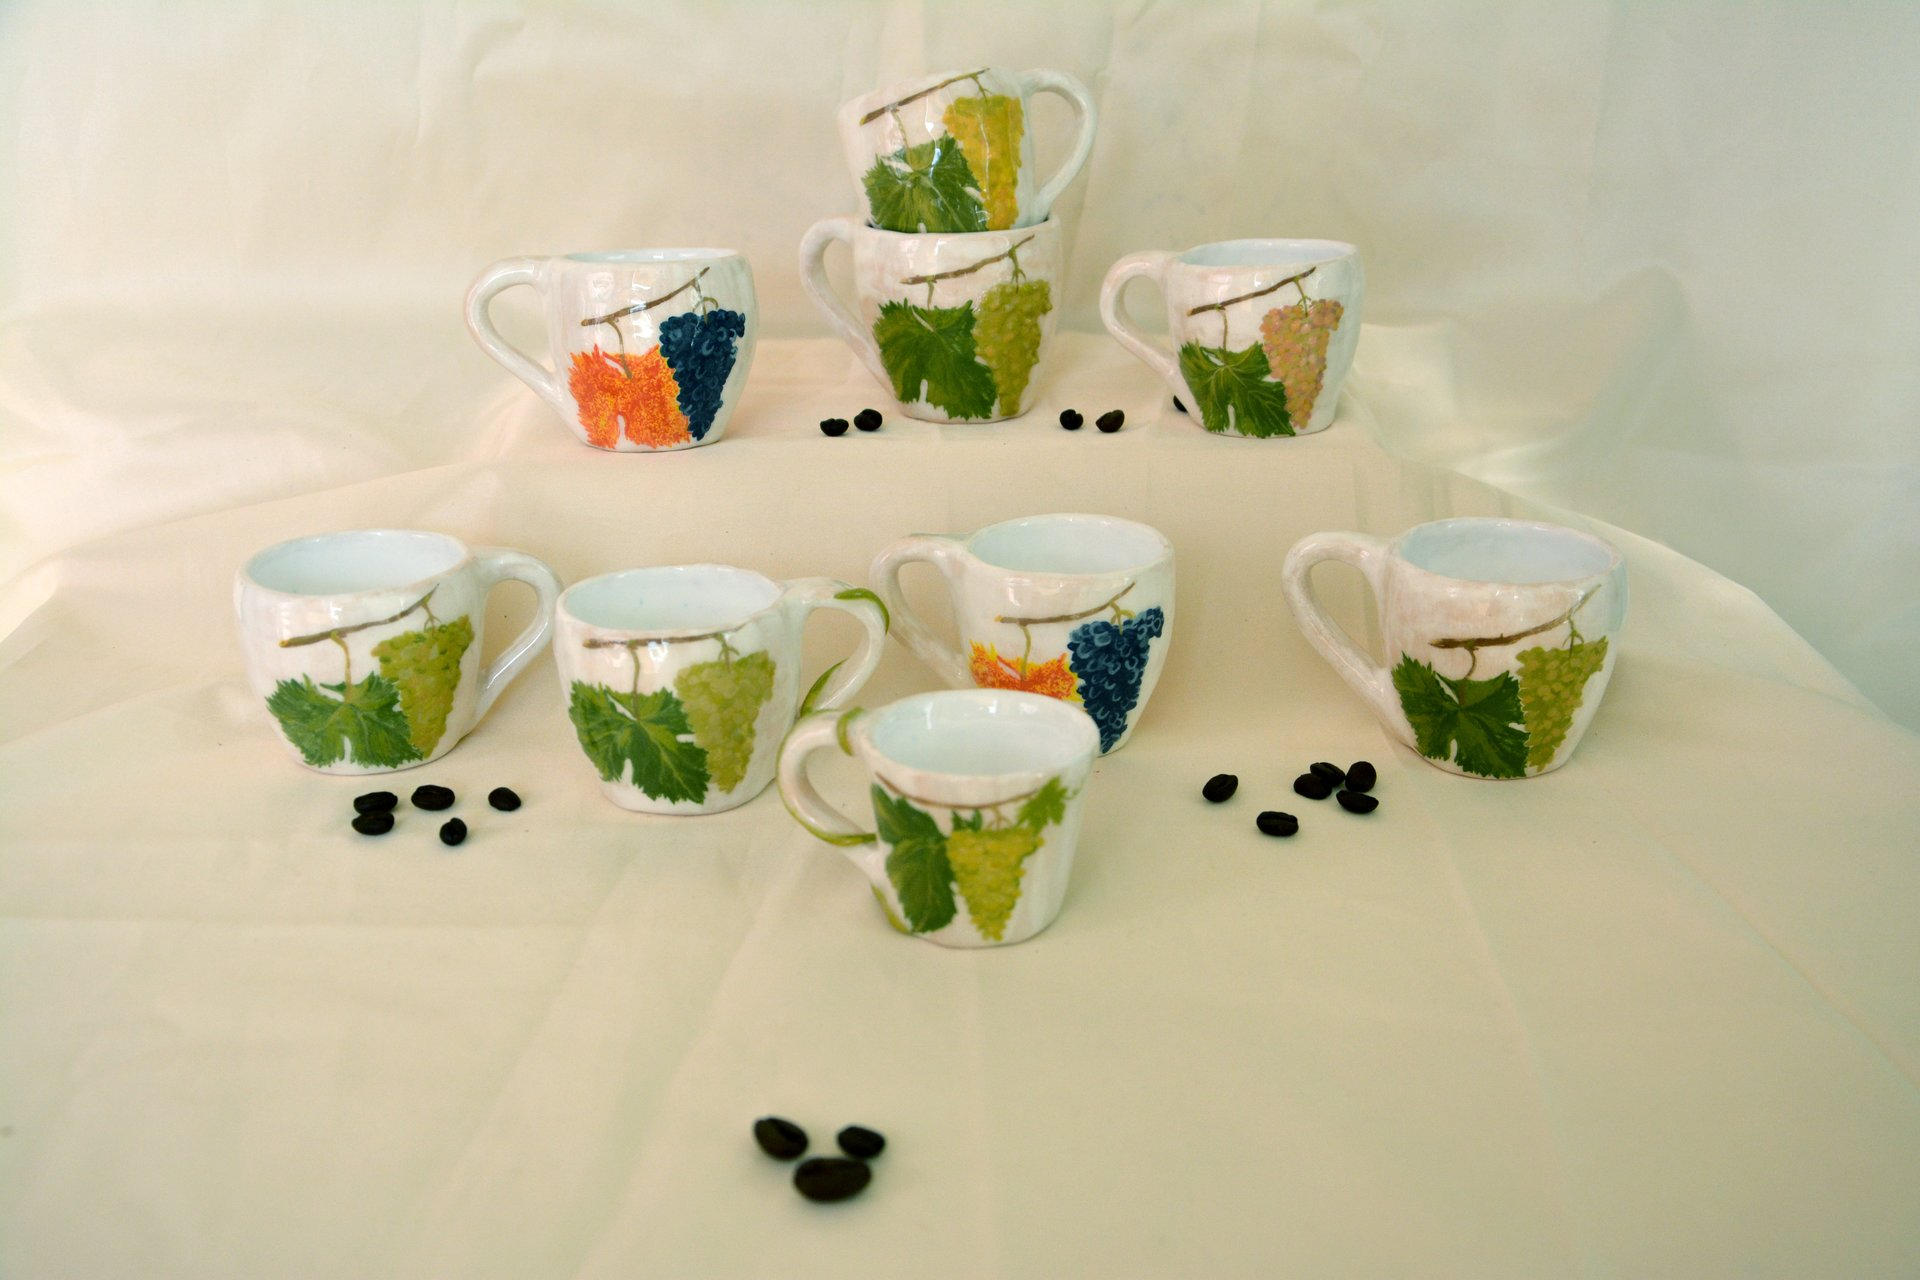 A set of white coffee cups Bunch of grapes - Cups, glasses, mugs, height - 6 cm, volume - 100 ml, photo 1 of 3.